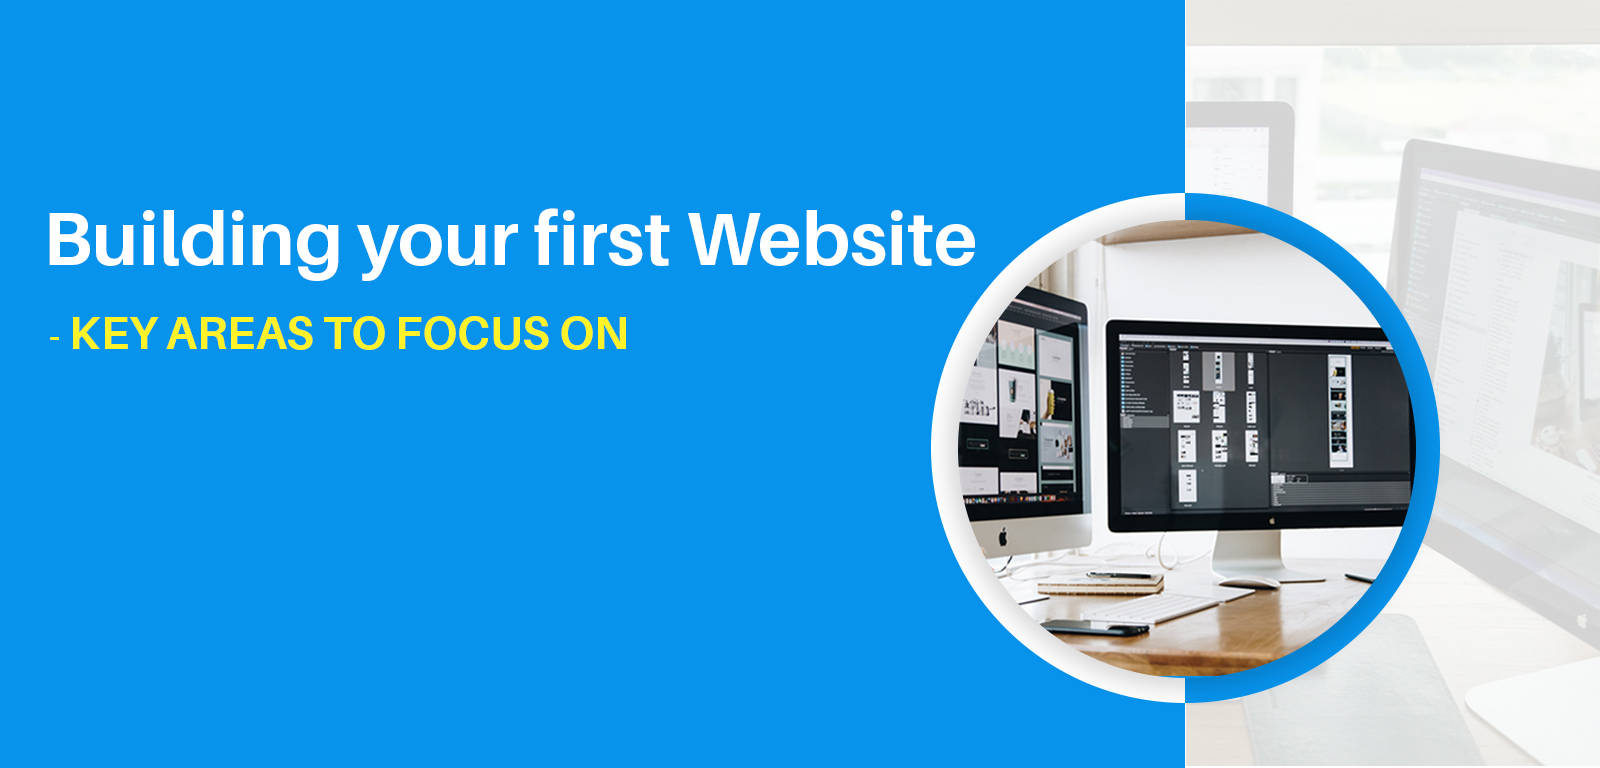 Building Your website keyareas